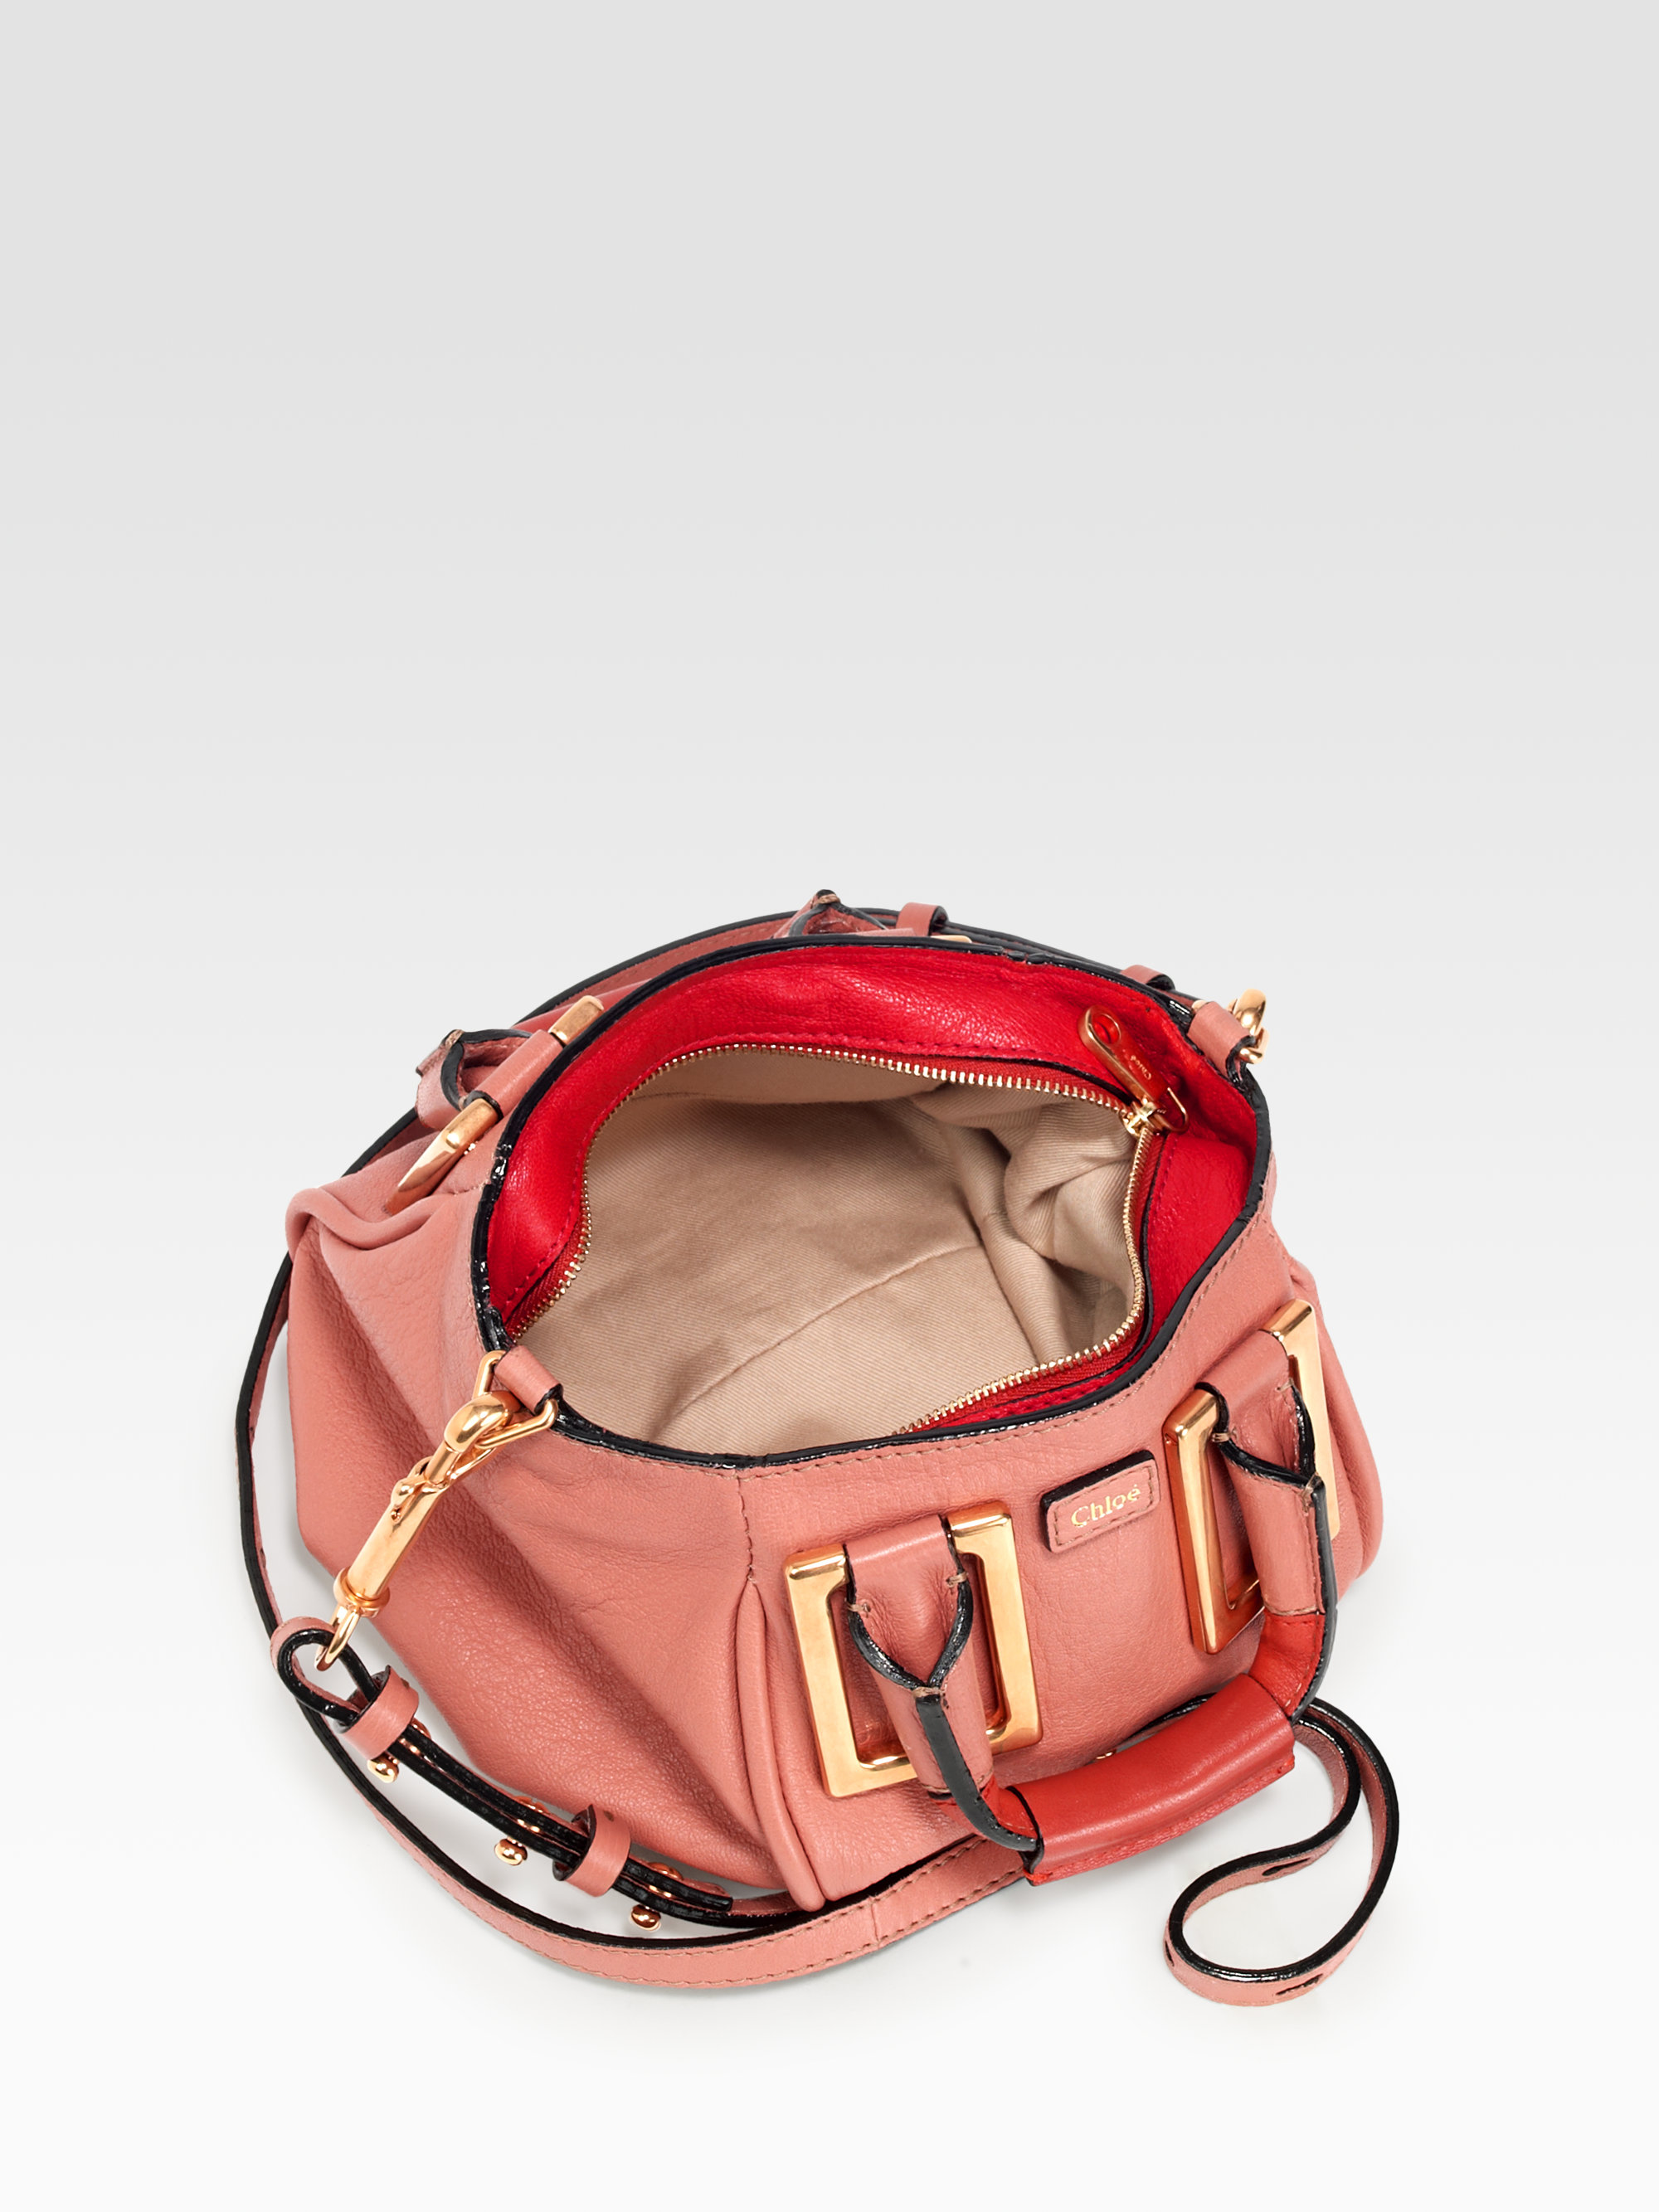 Chlo¨¦ Mini Ethel Leather Crossbody Bag in Pink (waterlily) | Lyst